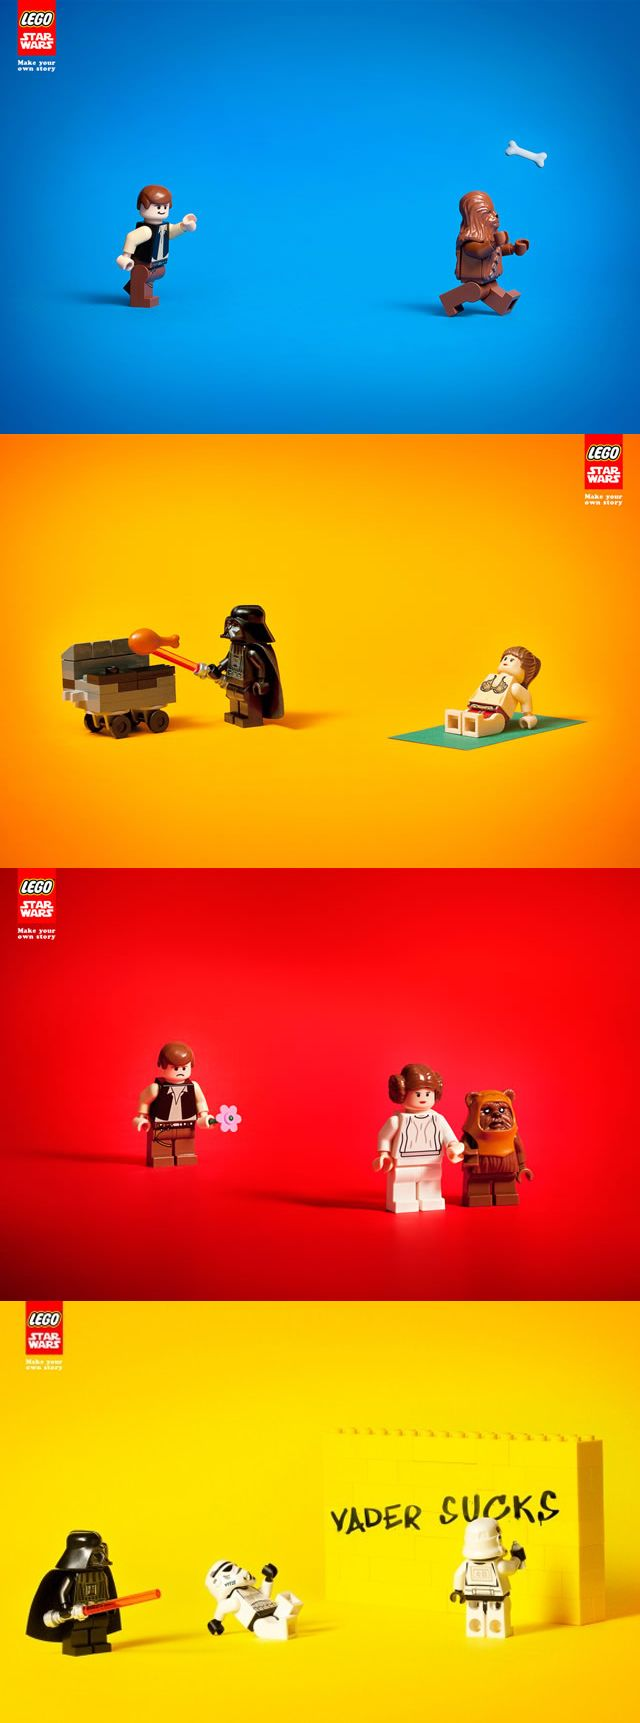 LEGO Star Wars Ads